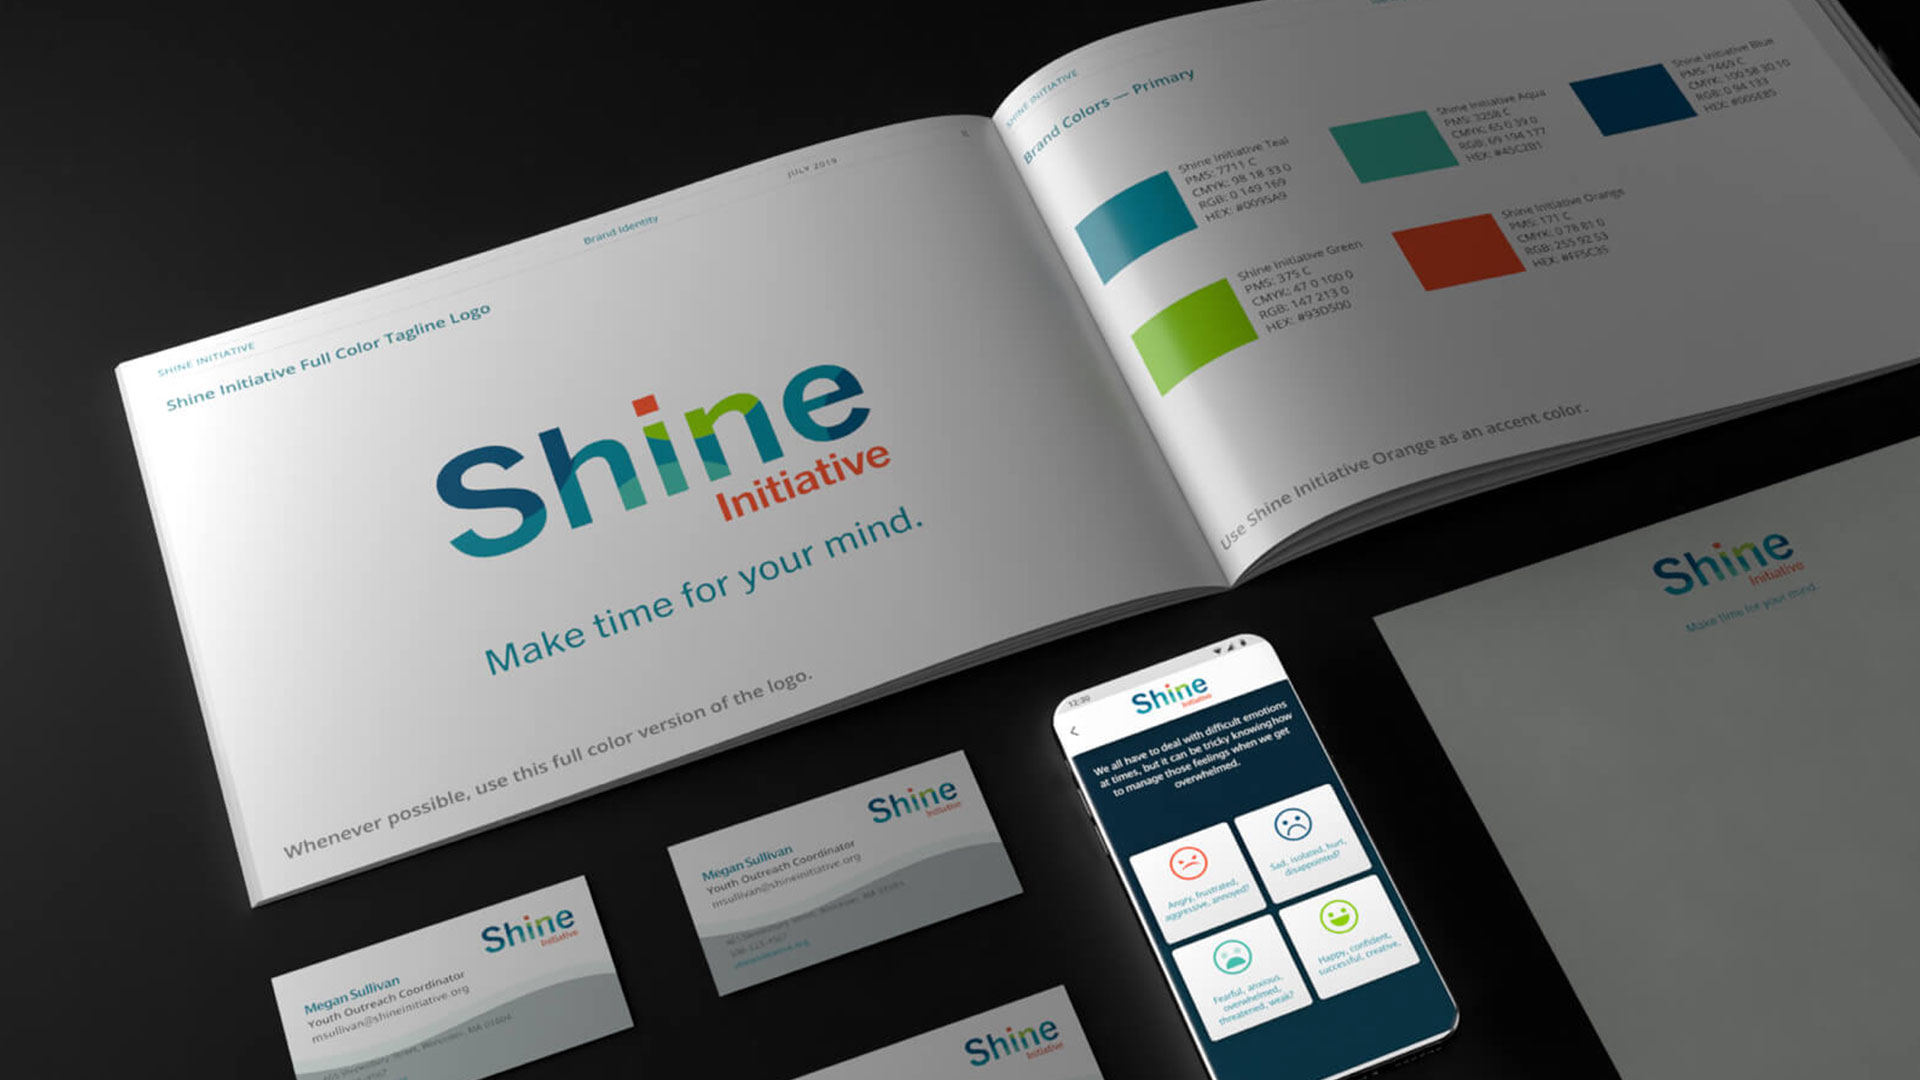 ShineInitiative